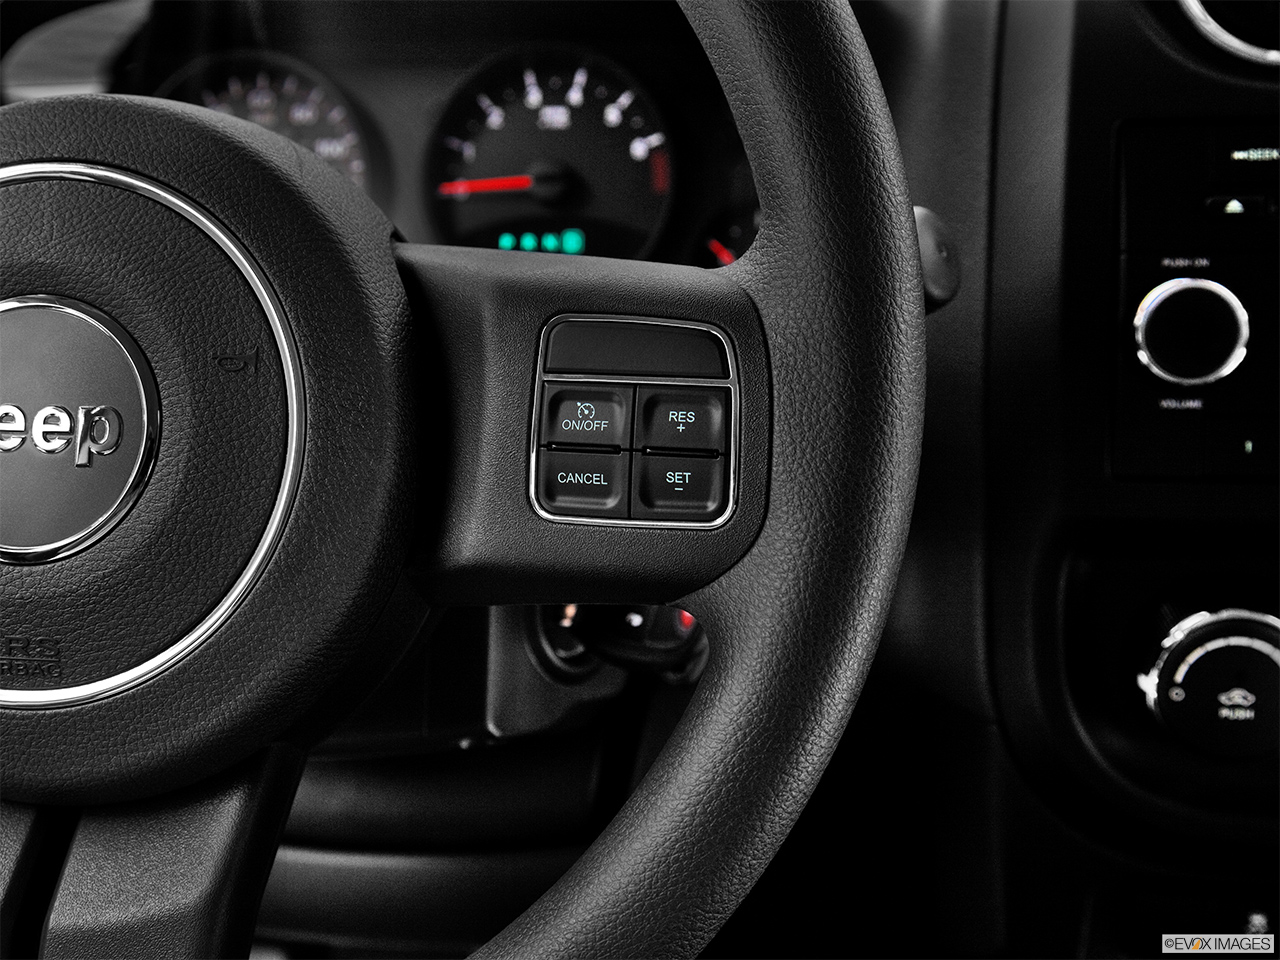 2012 Jeep Patriot Sport Steering Wheel Controls (Right Side)